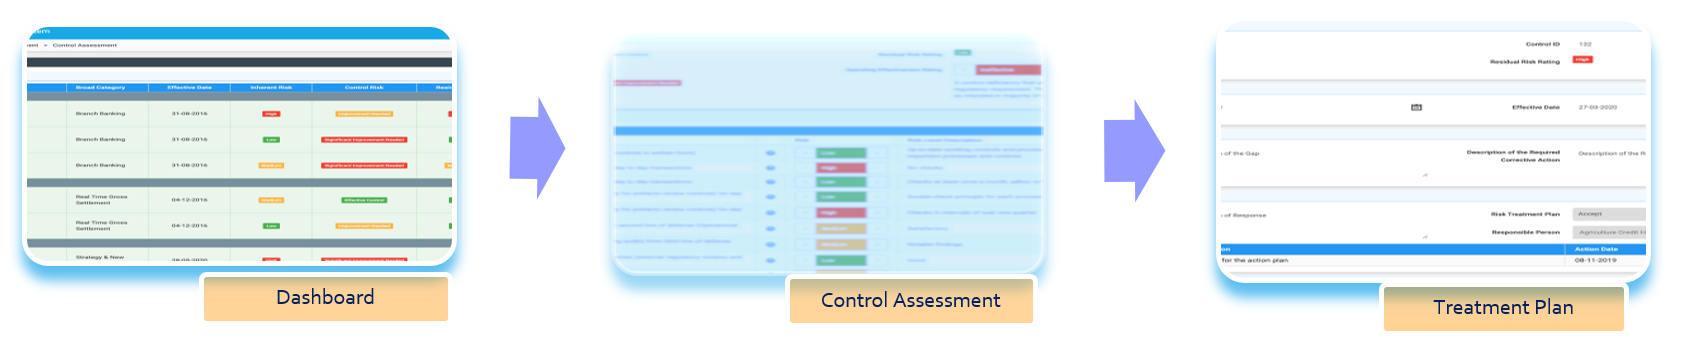 Control and Gap Assessment & Treatment Plan